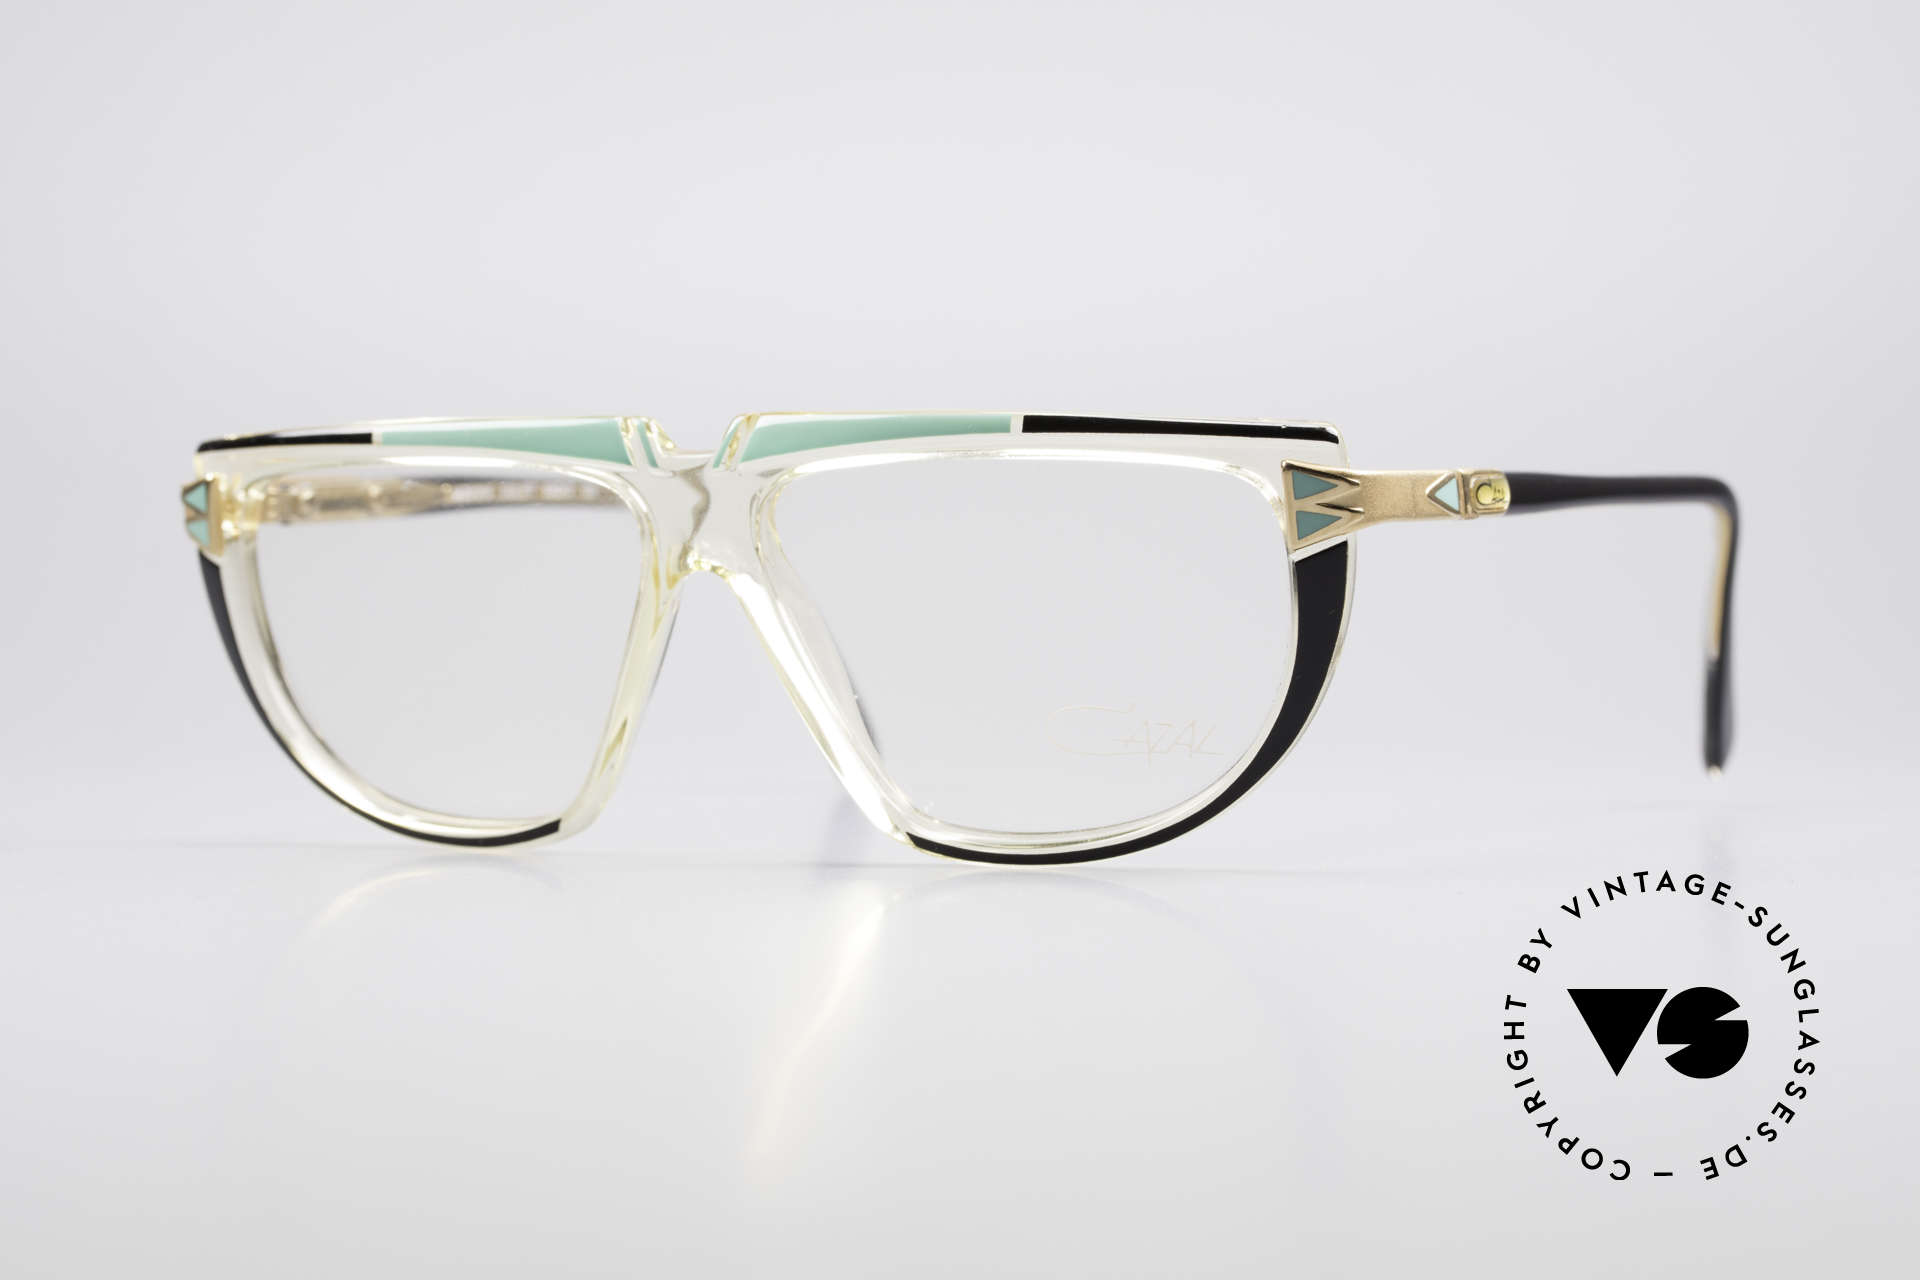 Cazal 316 True 80's Old School Glasses, fantastic Cazal design straight from the 80's, Made for Men and Women